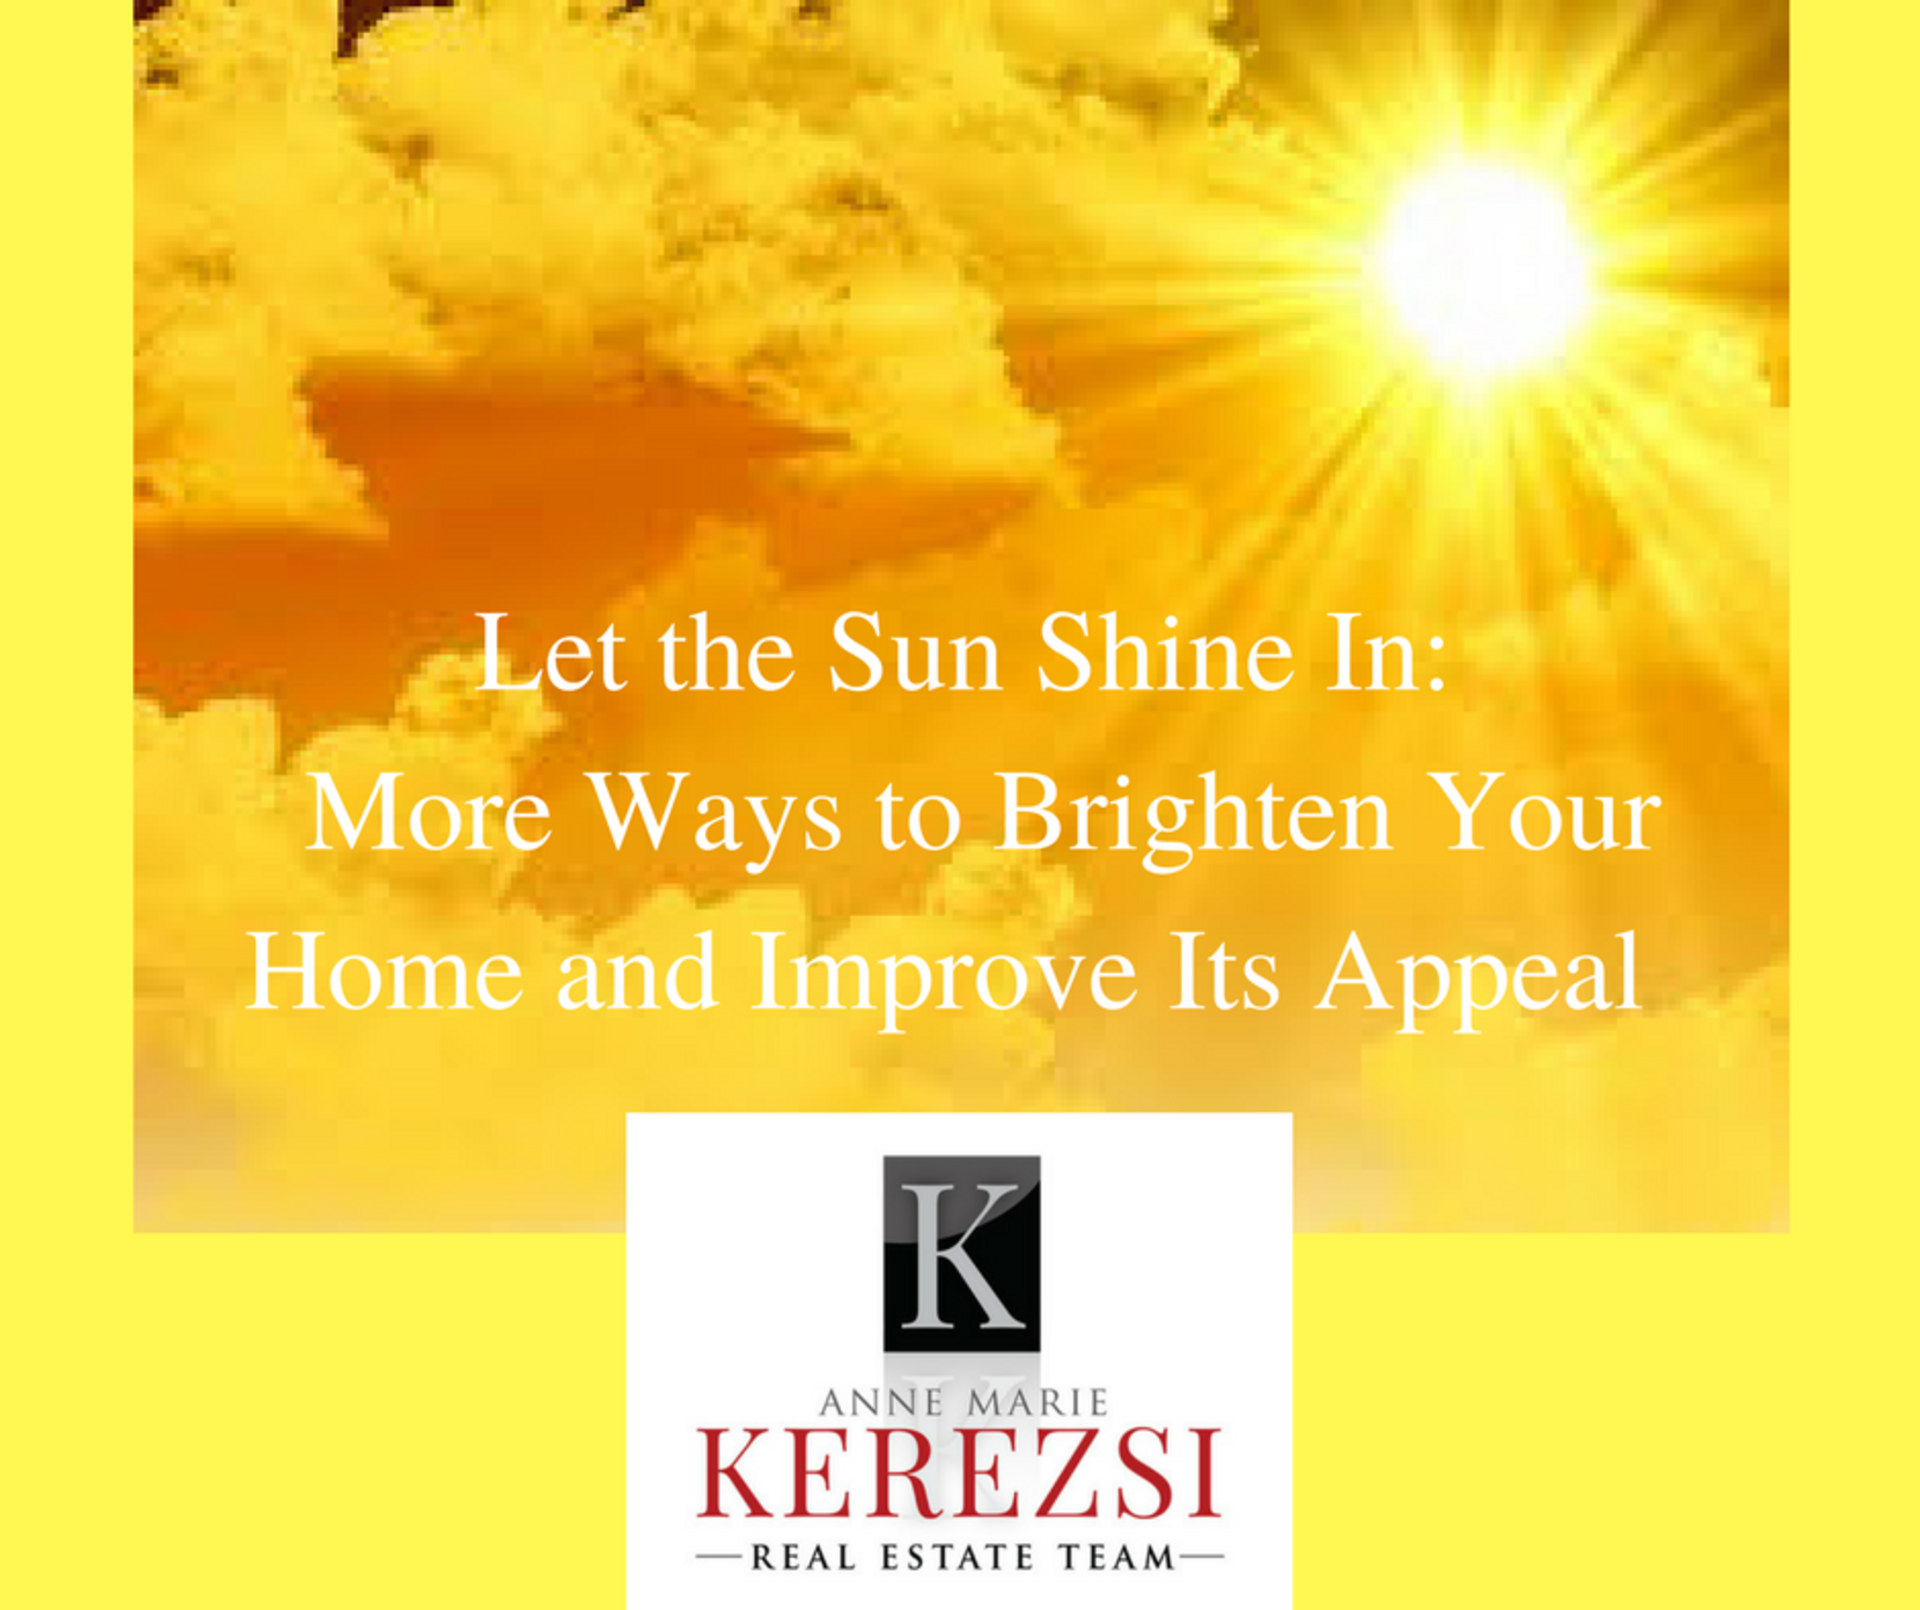 Let the Sun Shine In: More Ways to Brighten Your Home and Improve Its Appeal (from Home Keepr)